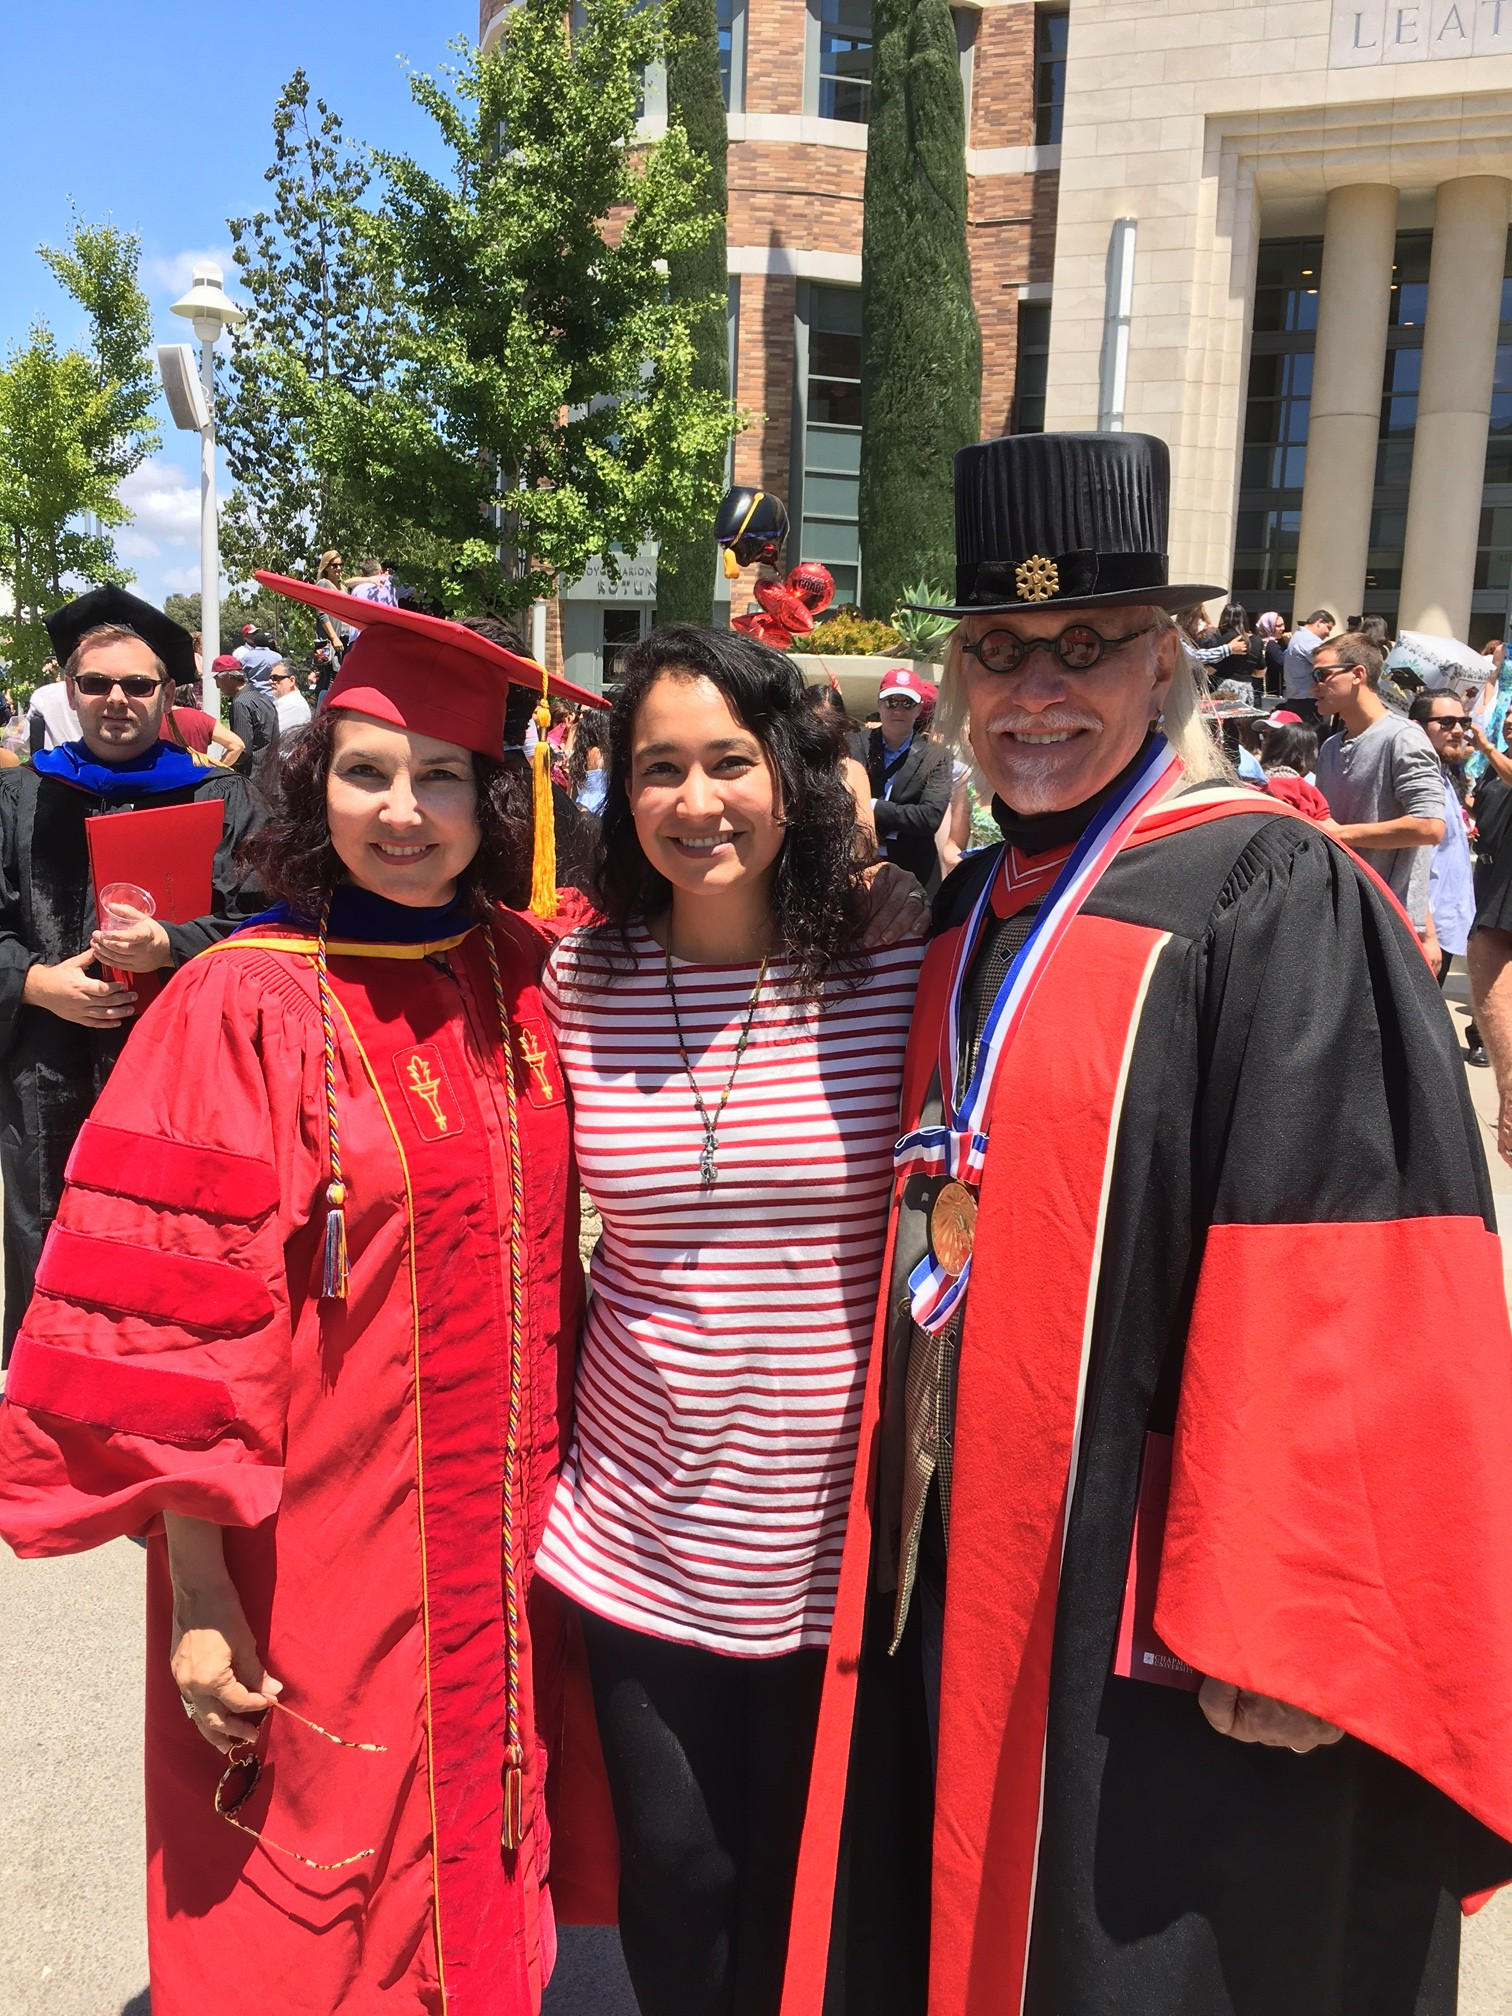 2016 Chapman University Graduation with Fatima and Lilia